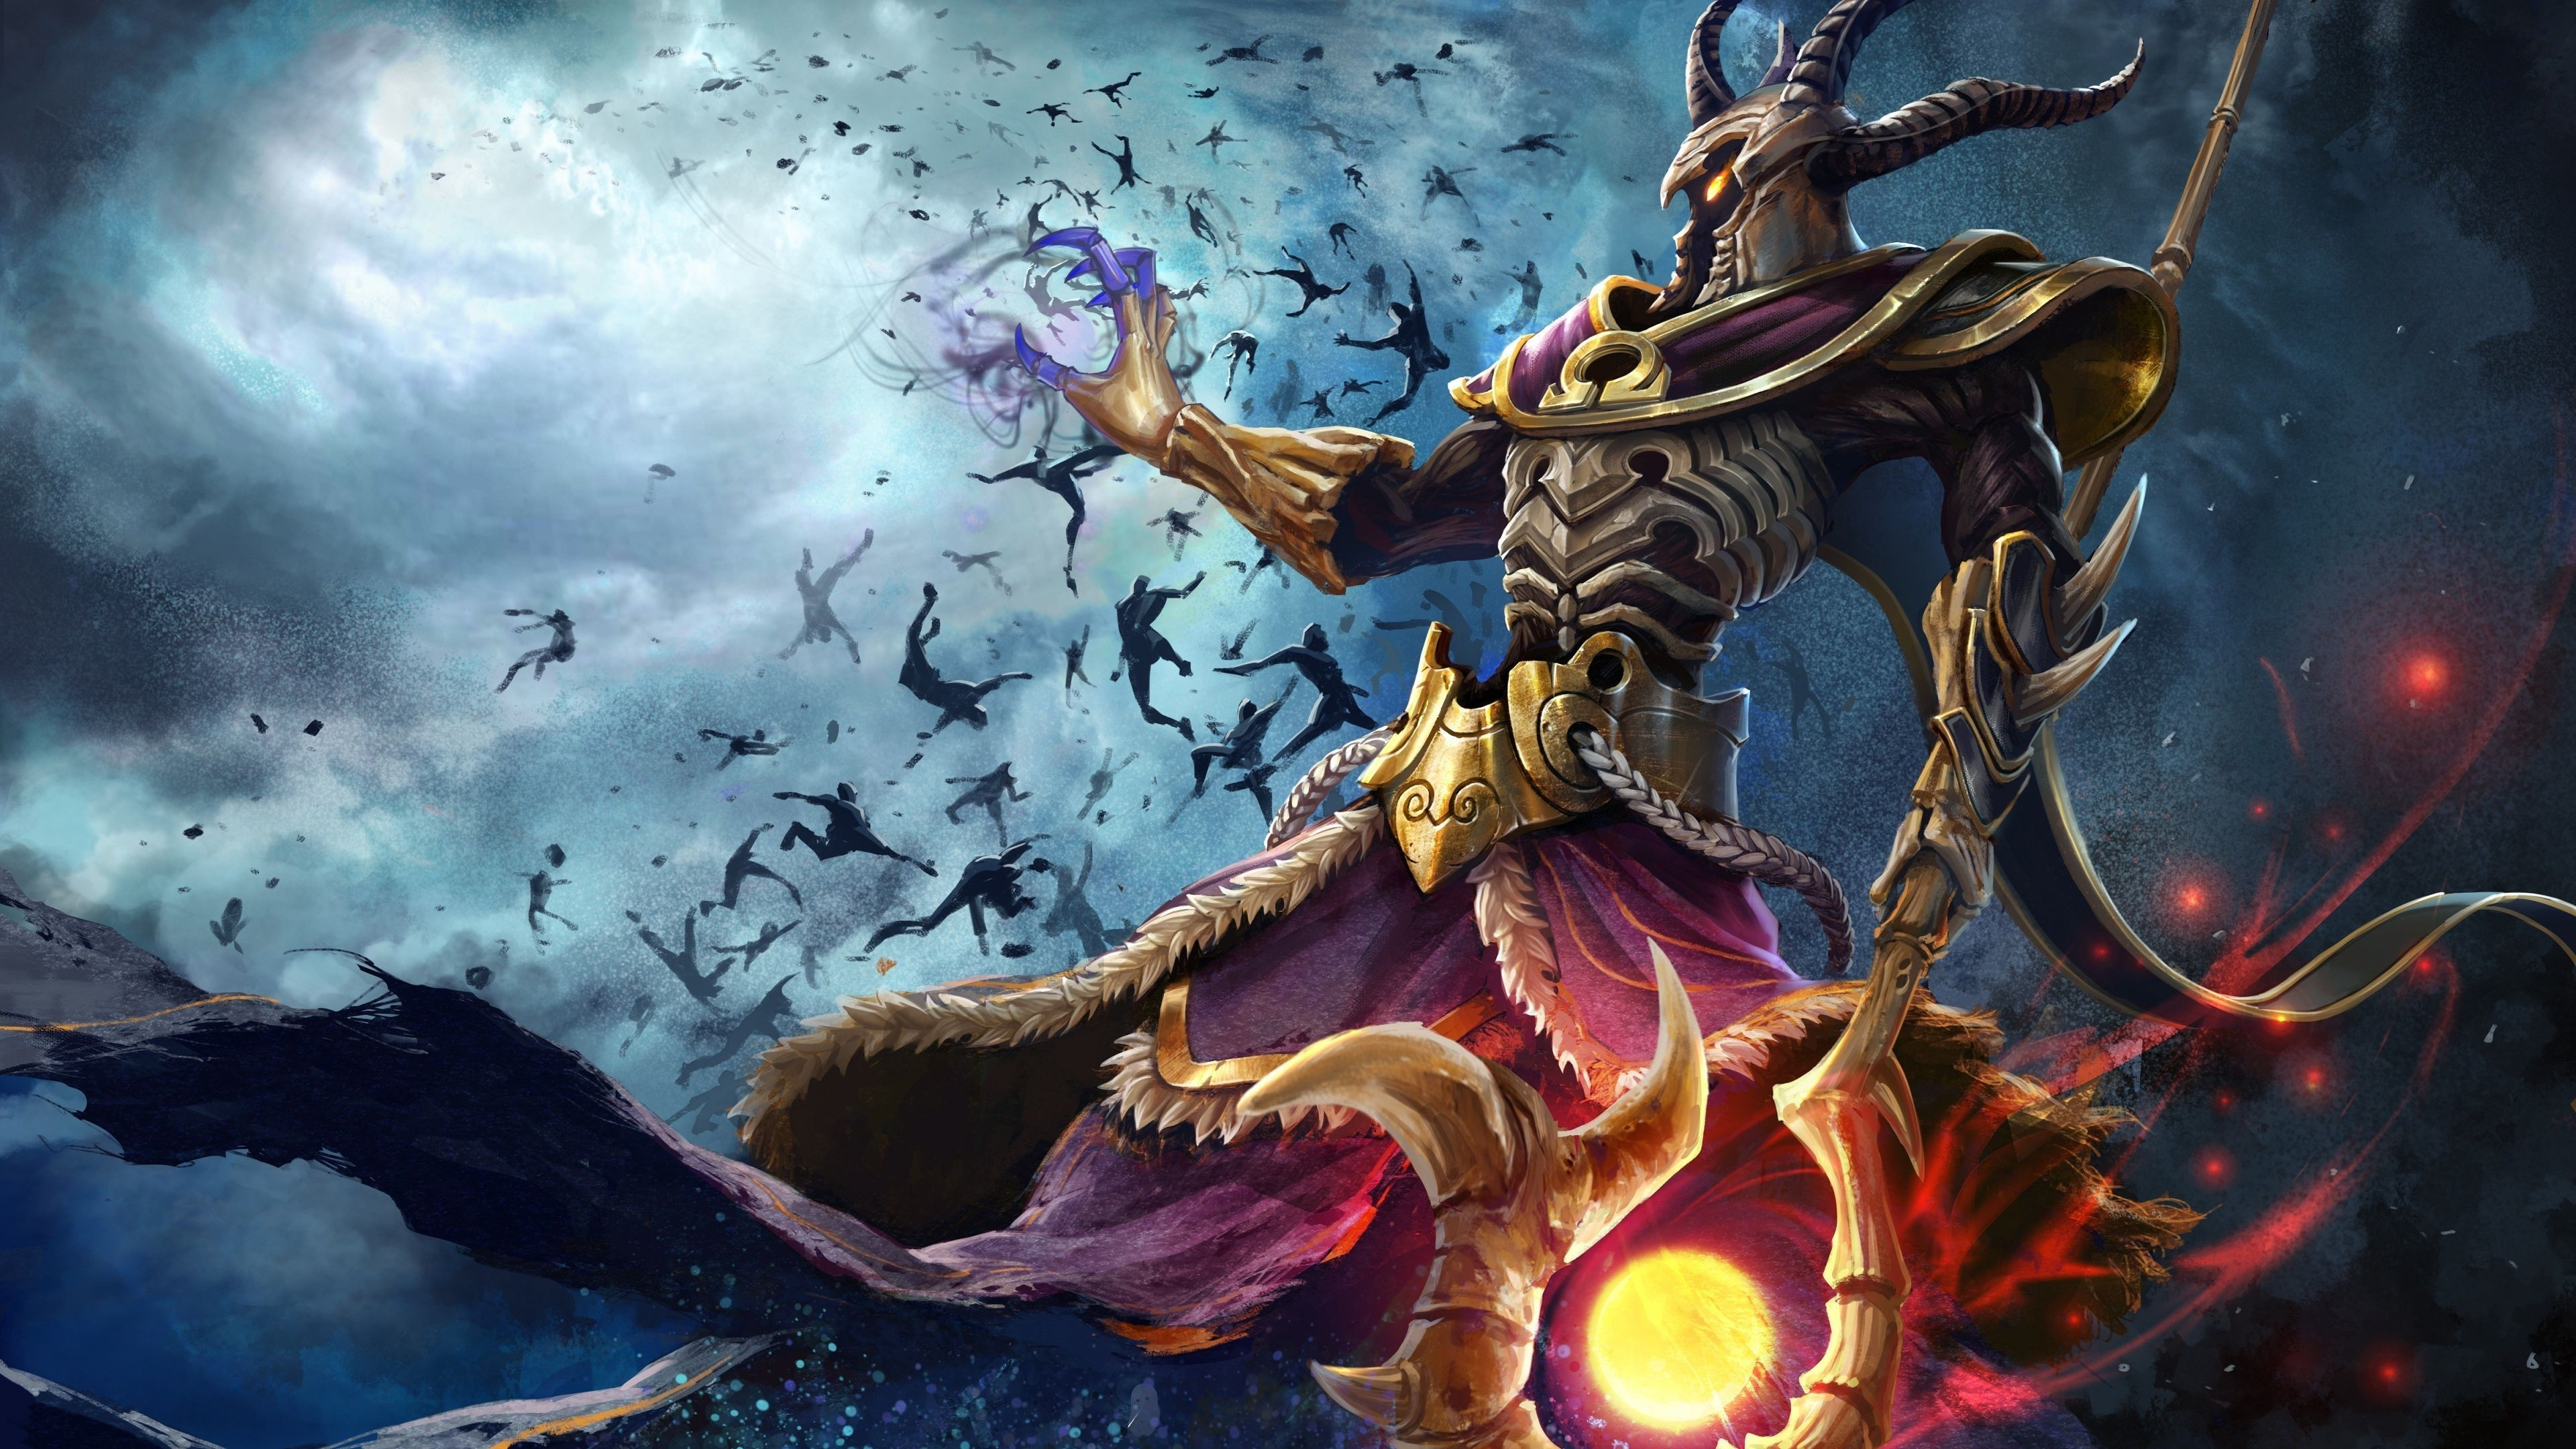 4k Ultra Hd Games Wallpapers Desktop Backgrounds Hd Hades Smite 3840x2160 Download Hd Wallpaper Wallpapertip